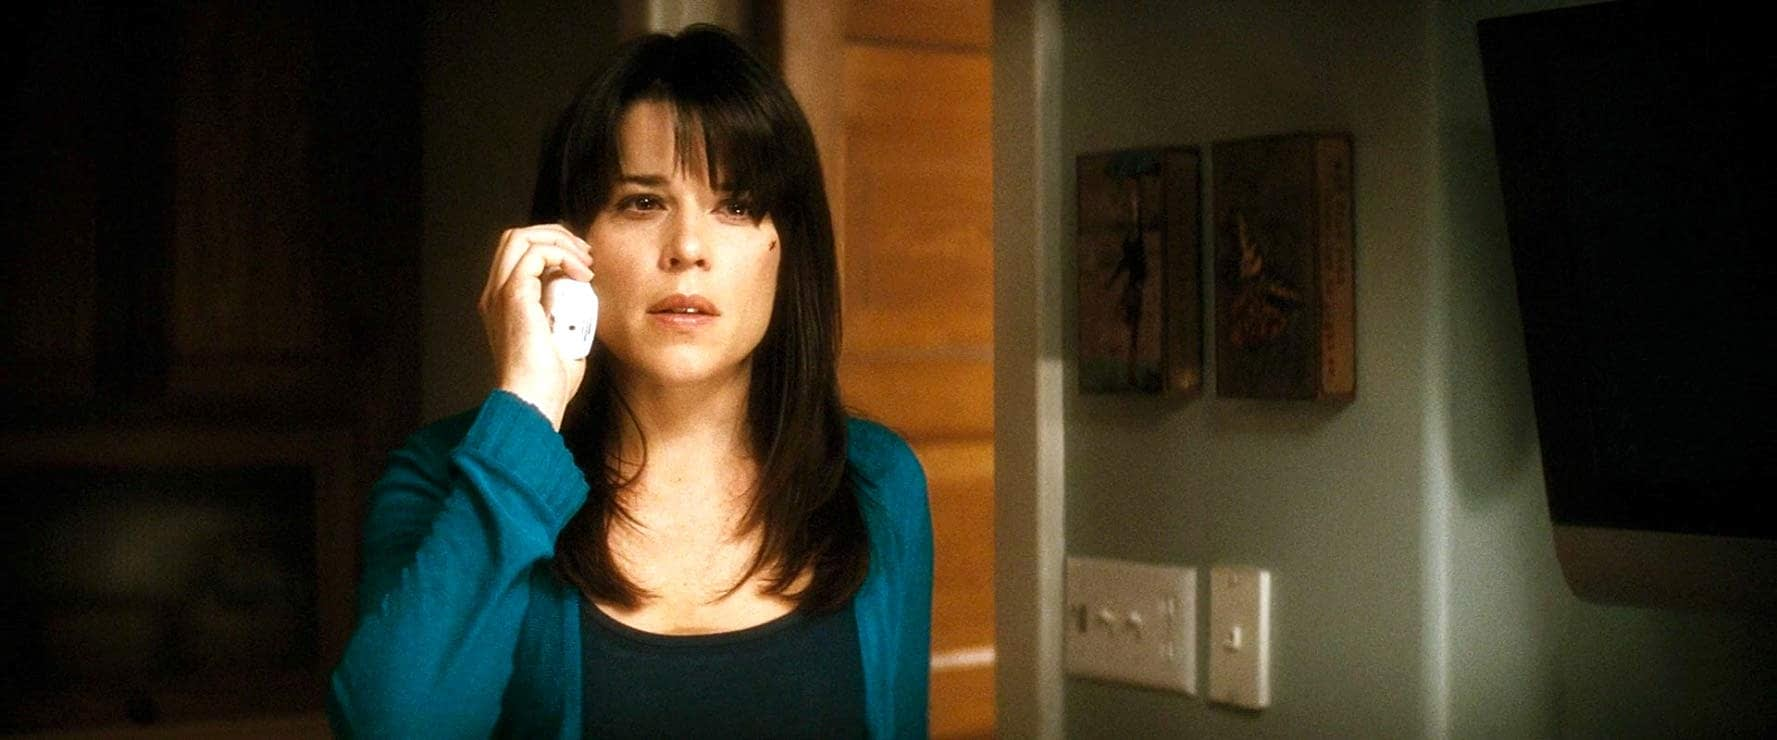 Why Scream 4 Deserves its Newfound Appreciation